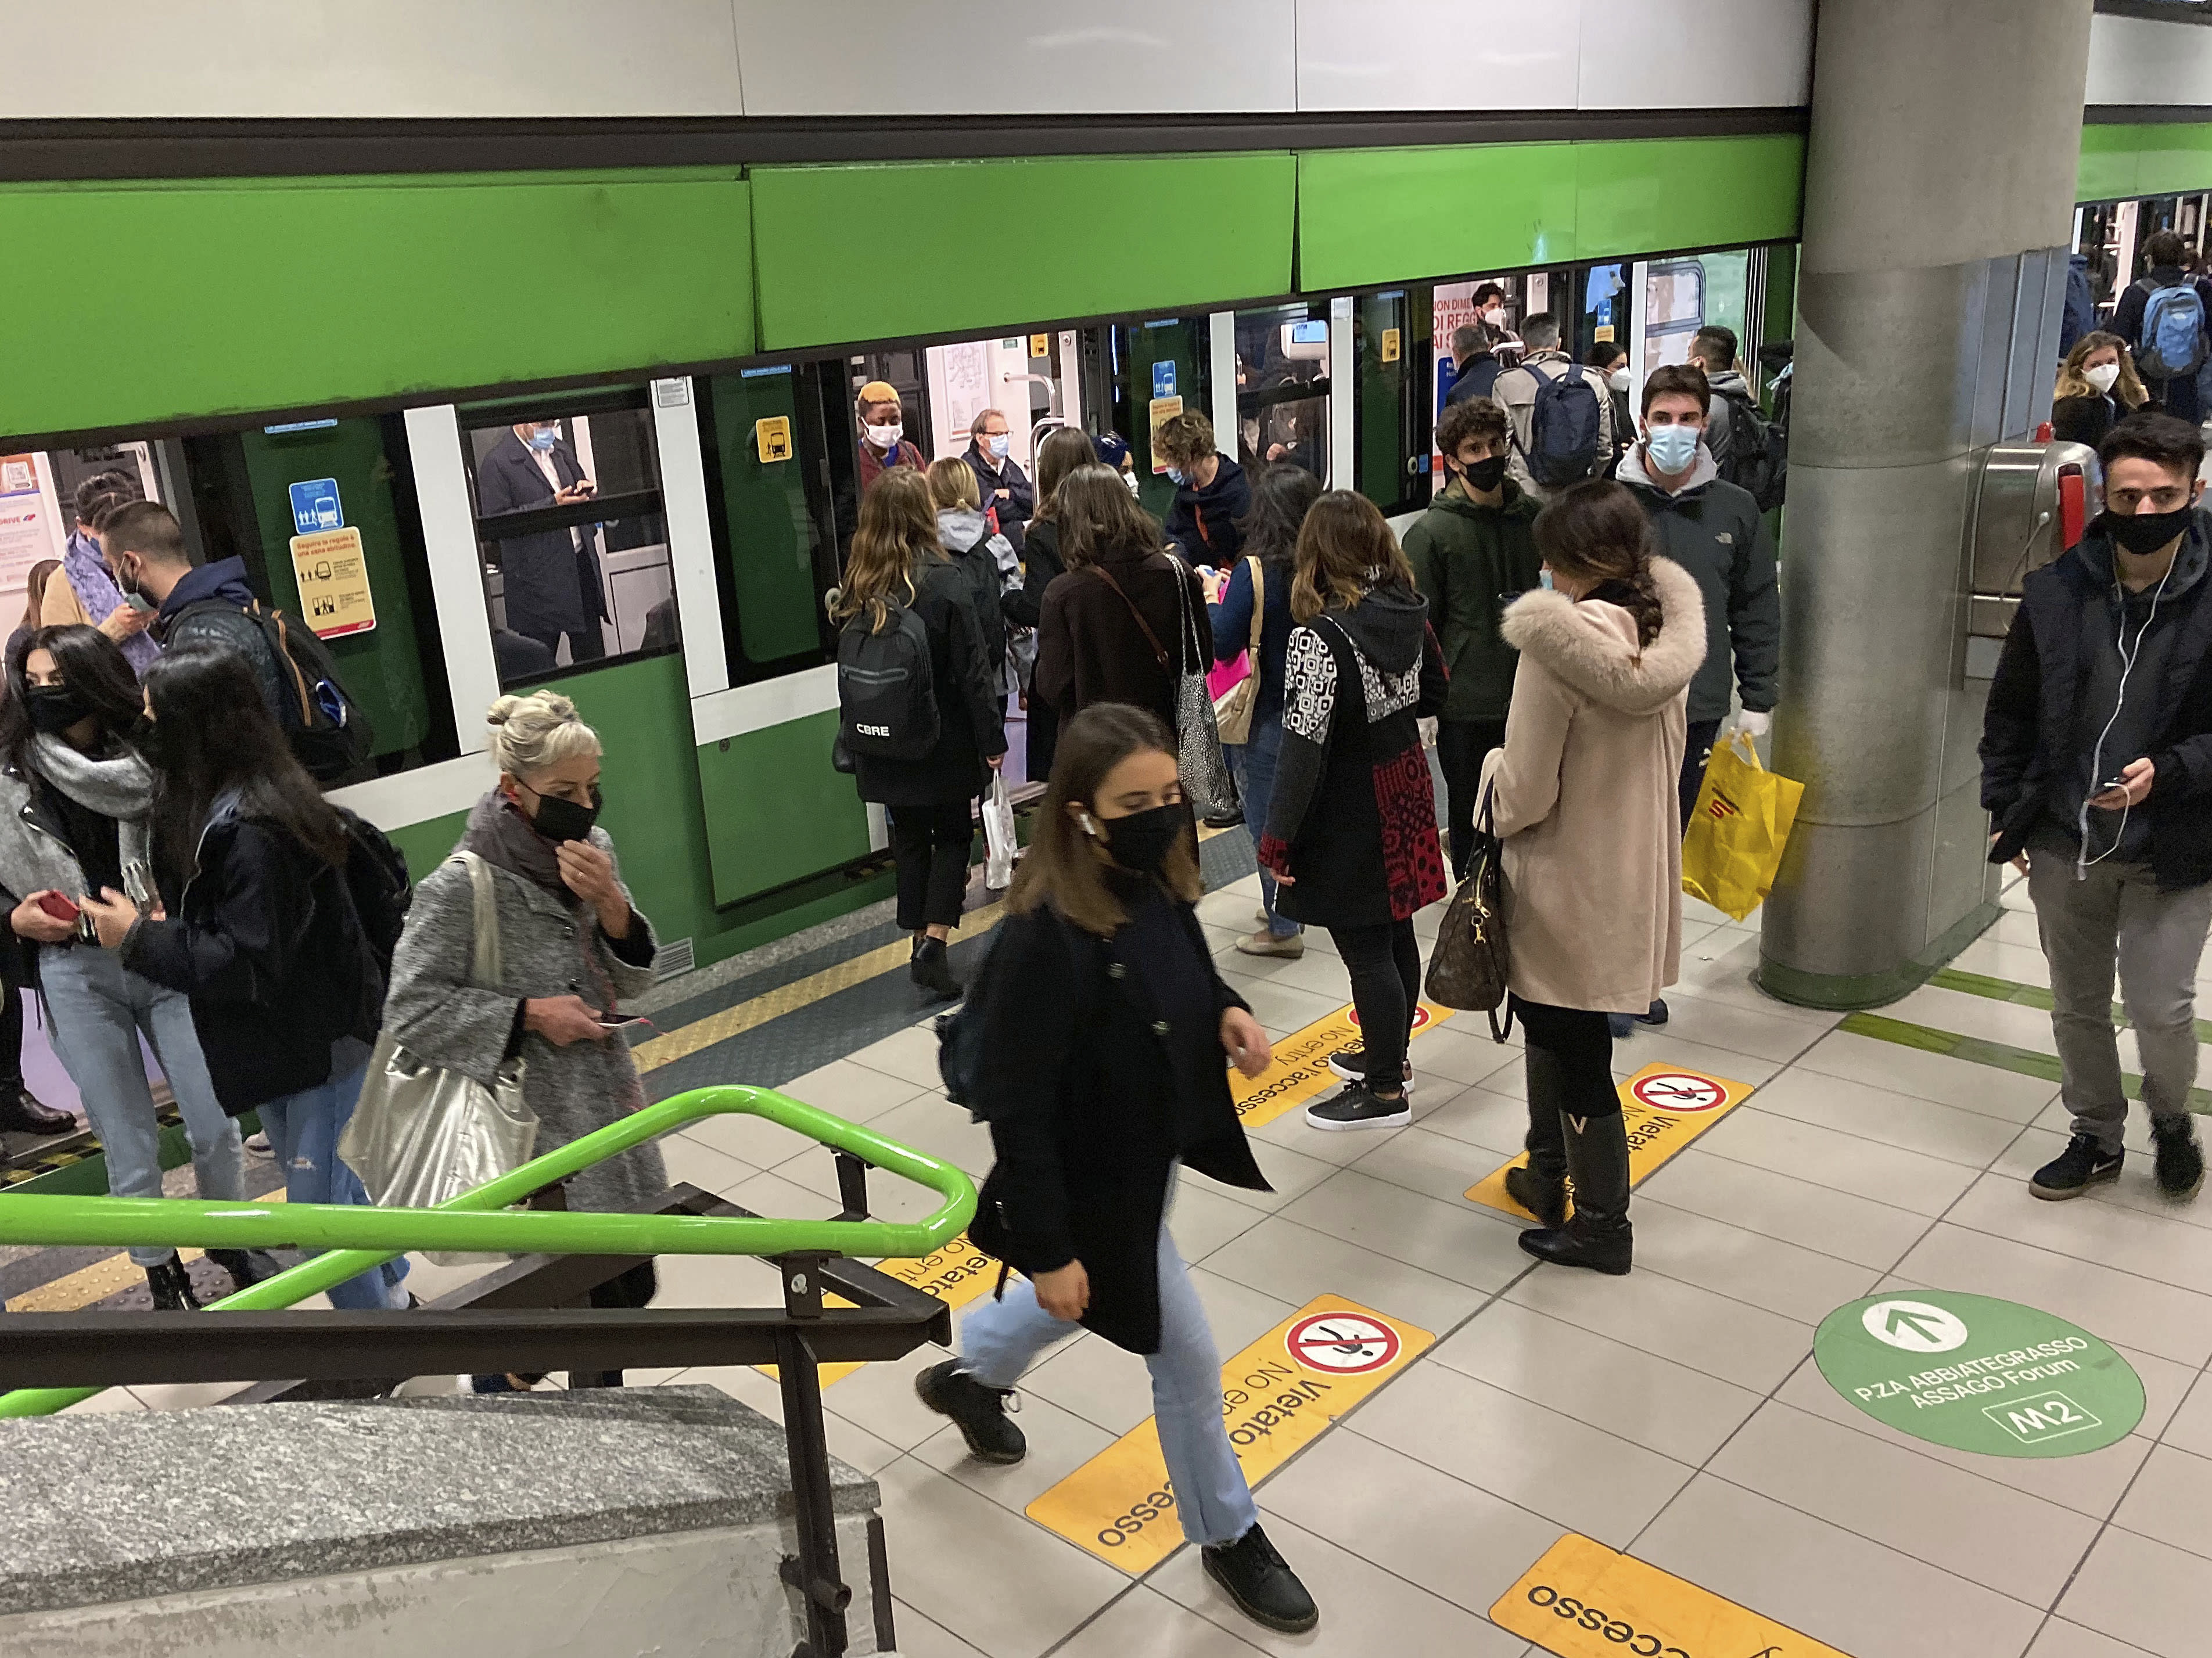 People wear face masks to prevent the spread of COVID-19 at a subway station, in Milan, Italy, Wednesday, Oct. 14, 2020. Italian Premier Giuseppe Conte says the aim of Italy's new anti-virus restrictions limiting nightlife and socializing is to head off another generalized lockdown. (AP Photo/Luca Bruno)